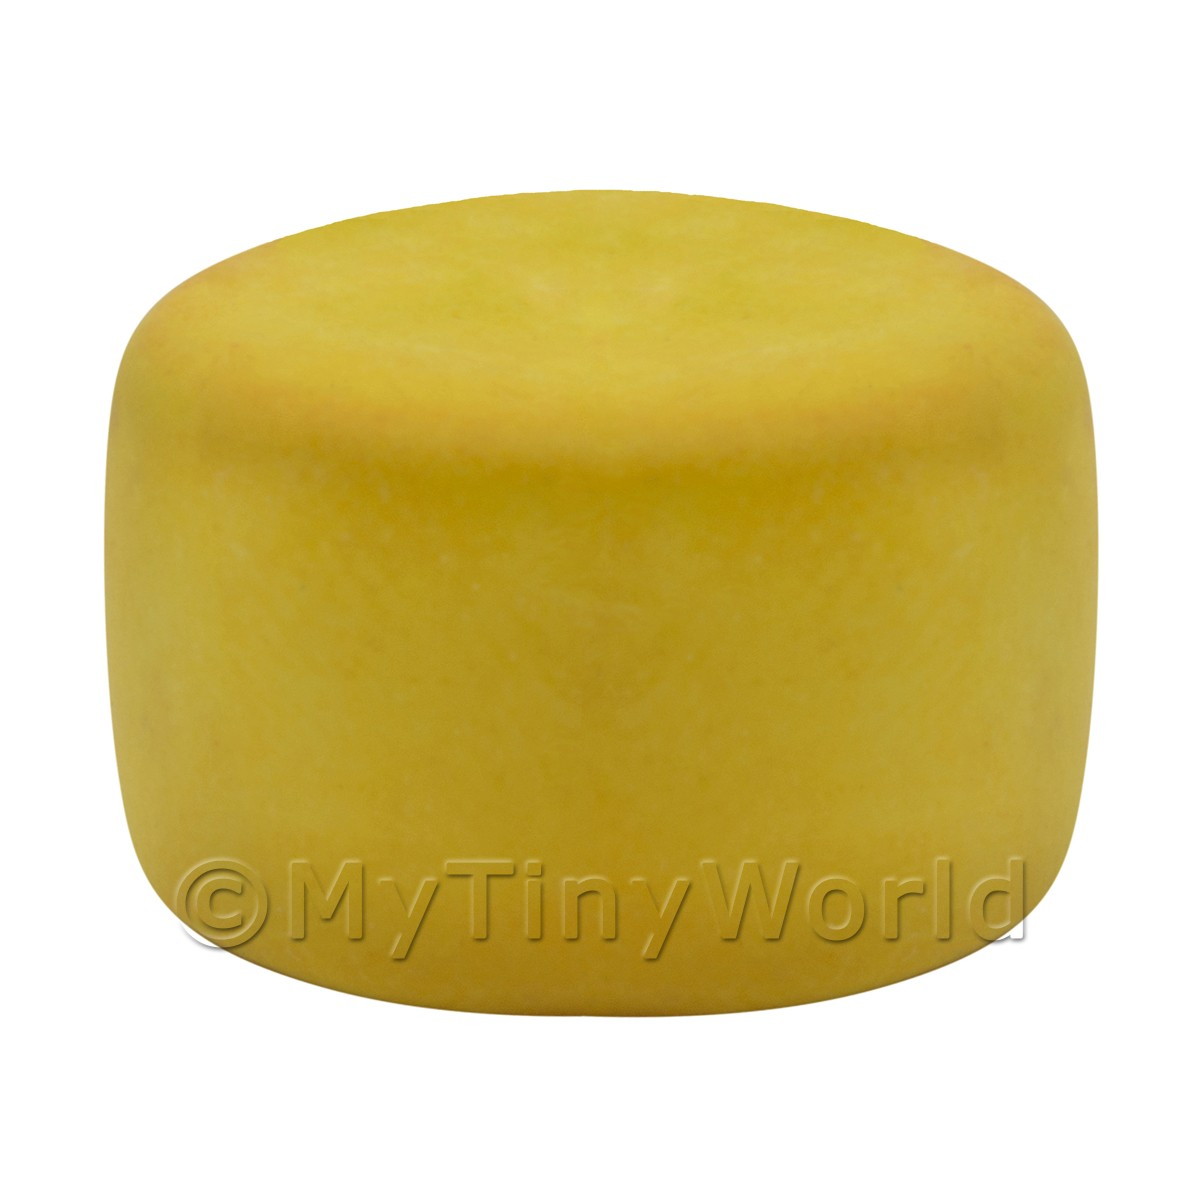 Dolls House Miniature Handmade Whole Piedmont Cheese Wheel